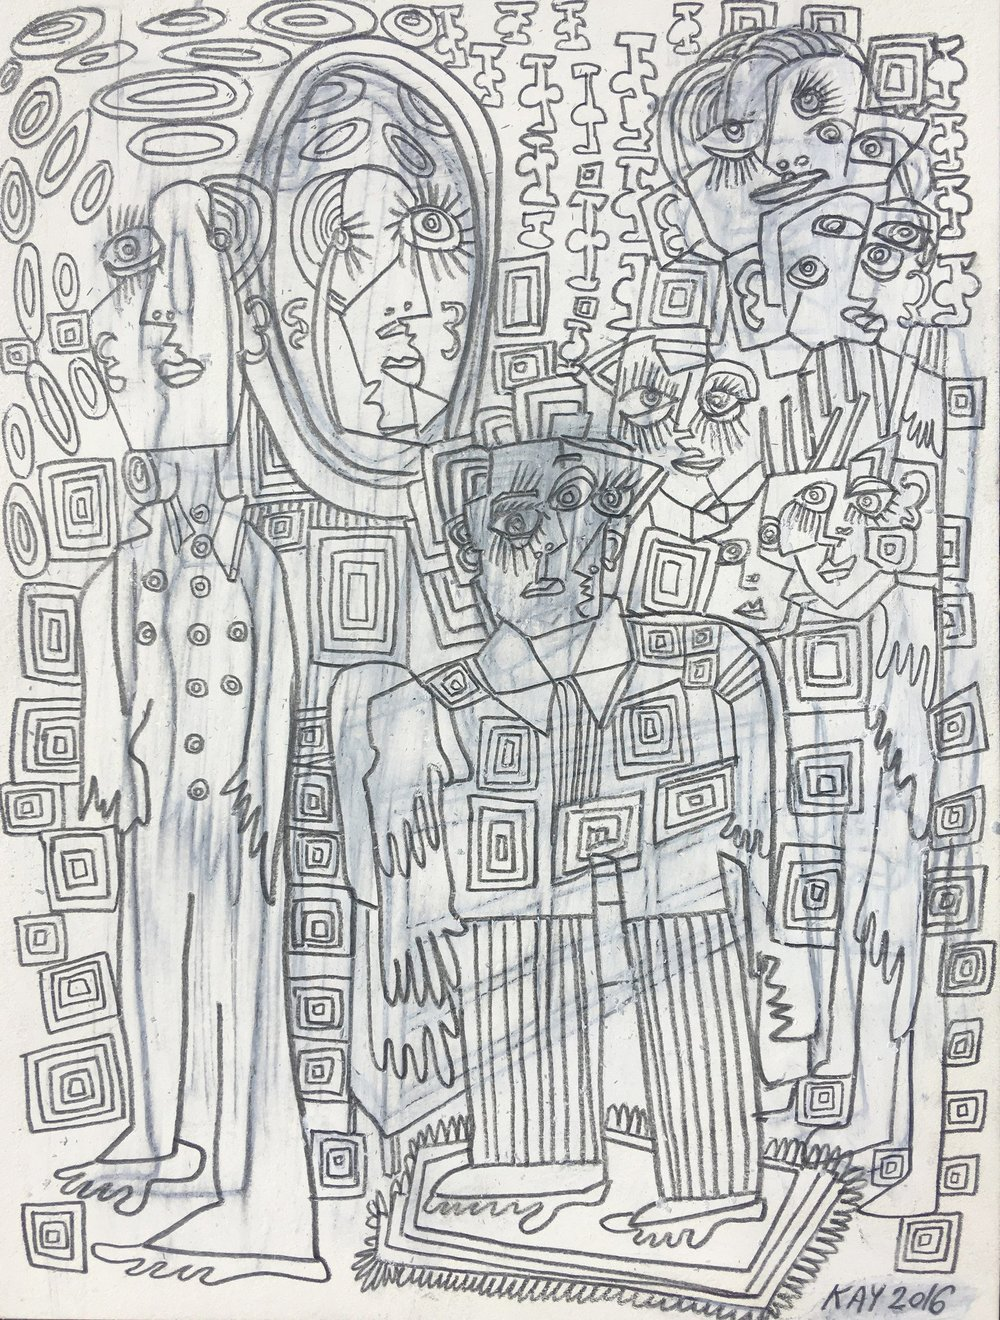 OIL DRAWING 35 - WILL KAY$350This drawing is from my series of oil and pencil on paper. Common themes mused upon are figures, animals, plants, music, asymmetry and rhythm. description: oil and pencil on paper, 6